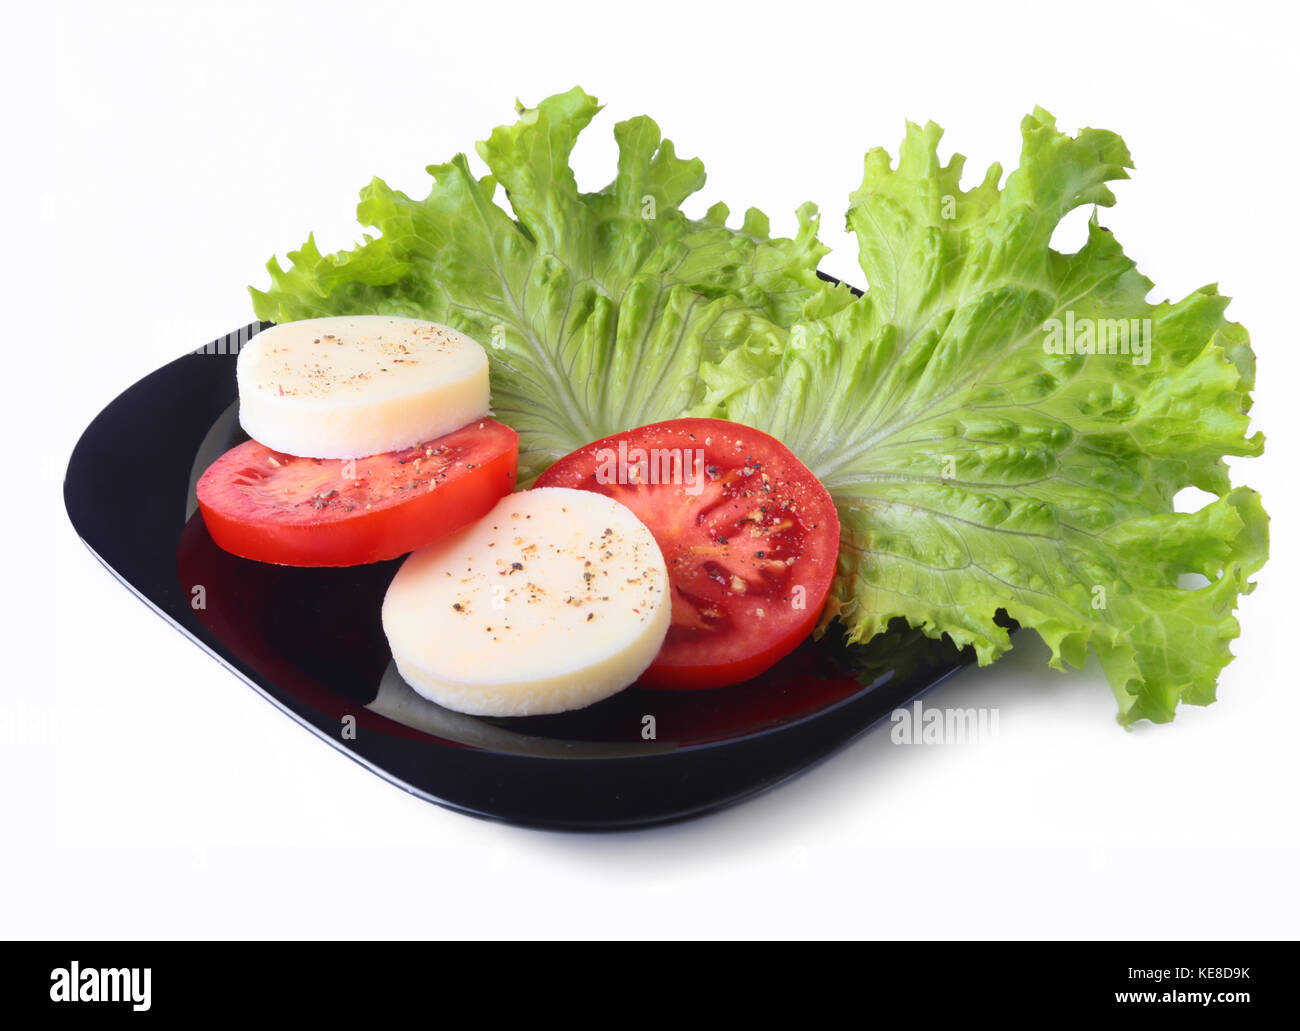 Portion of Mozzarella with Tomatoes, lettuce leaf and Balsamic dressing on black plate. selective focus close-up - Stock Image